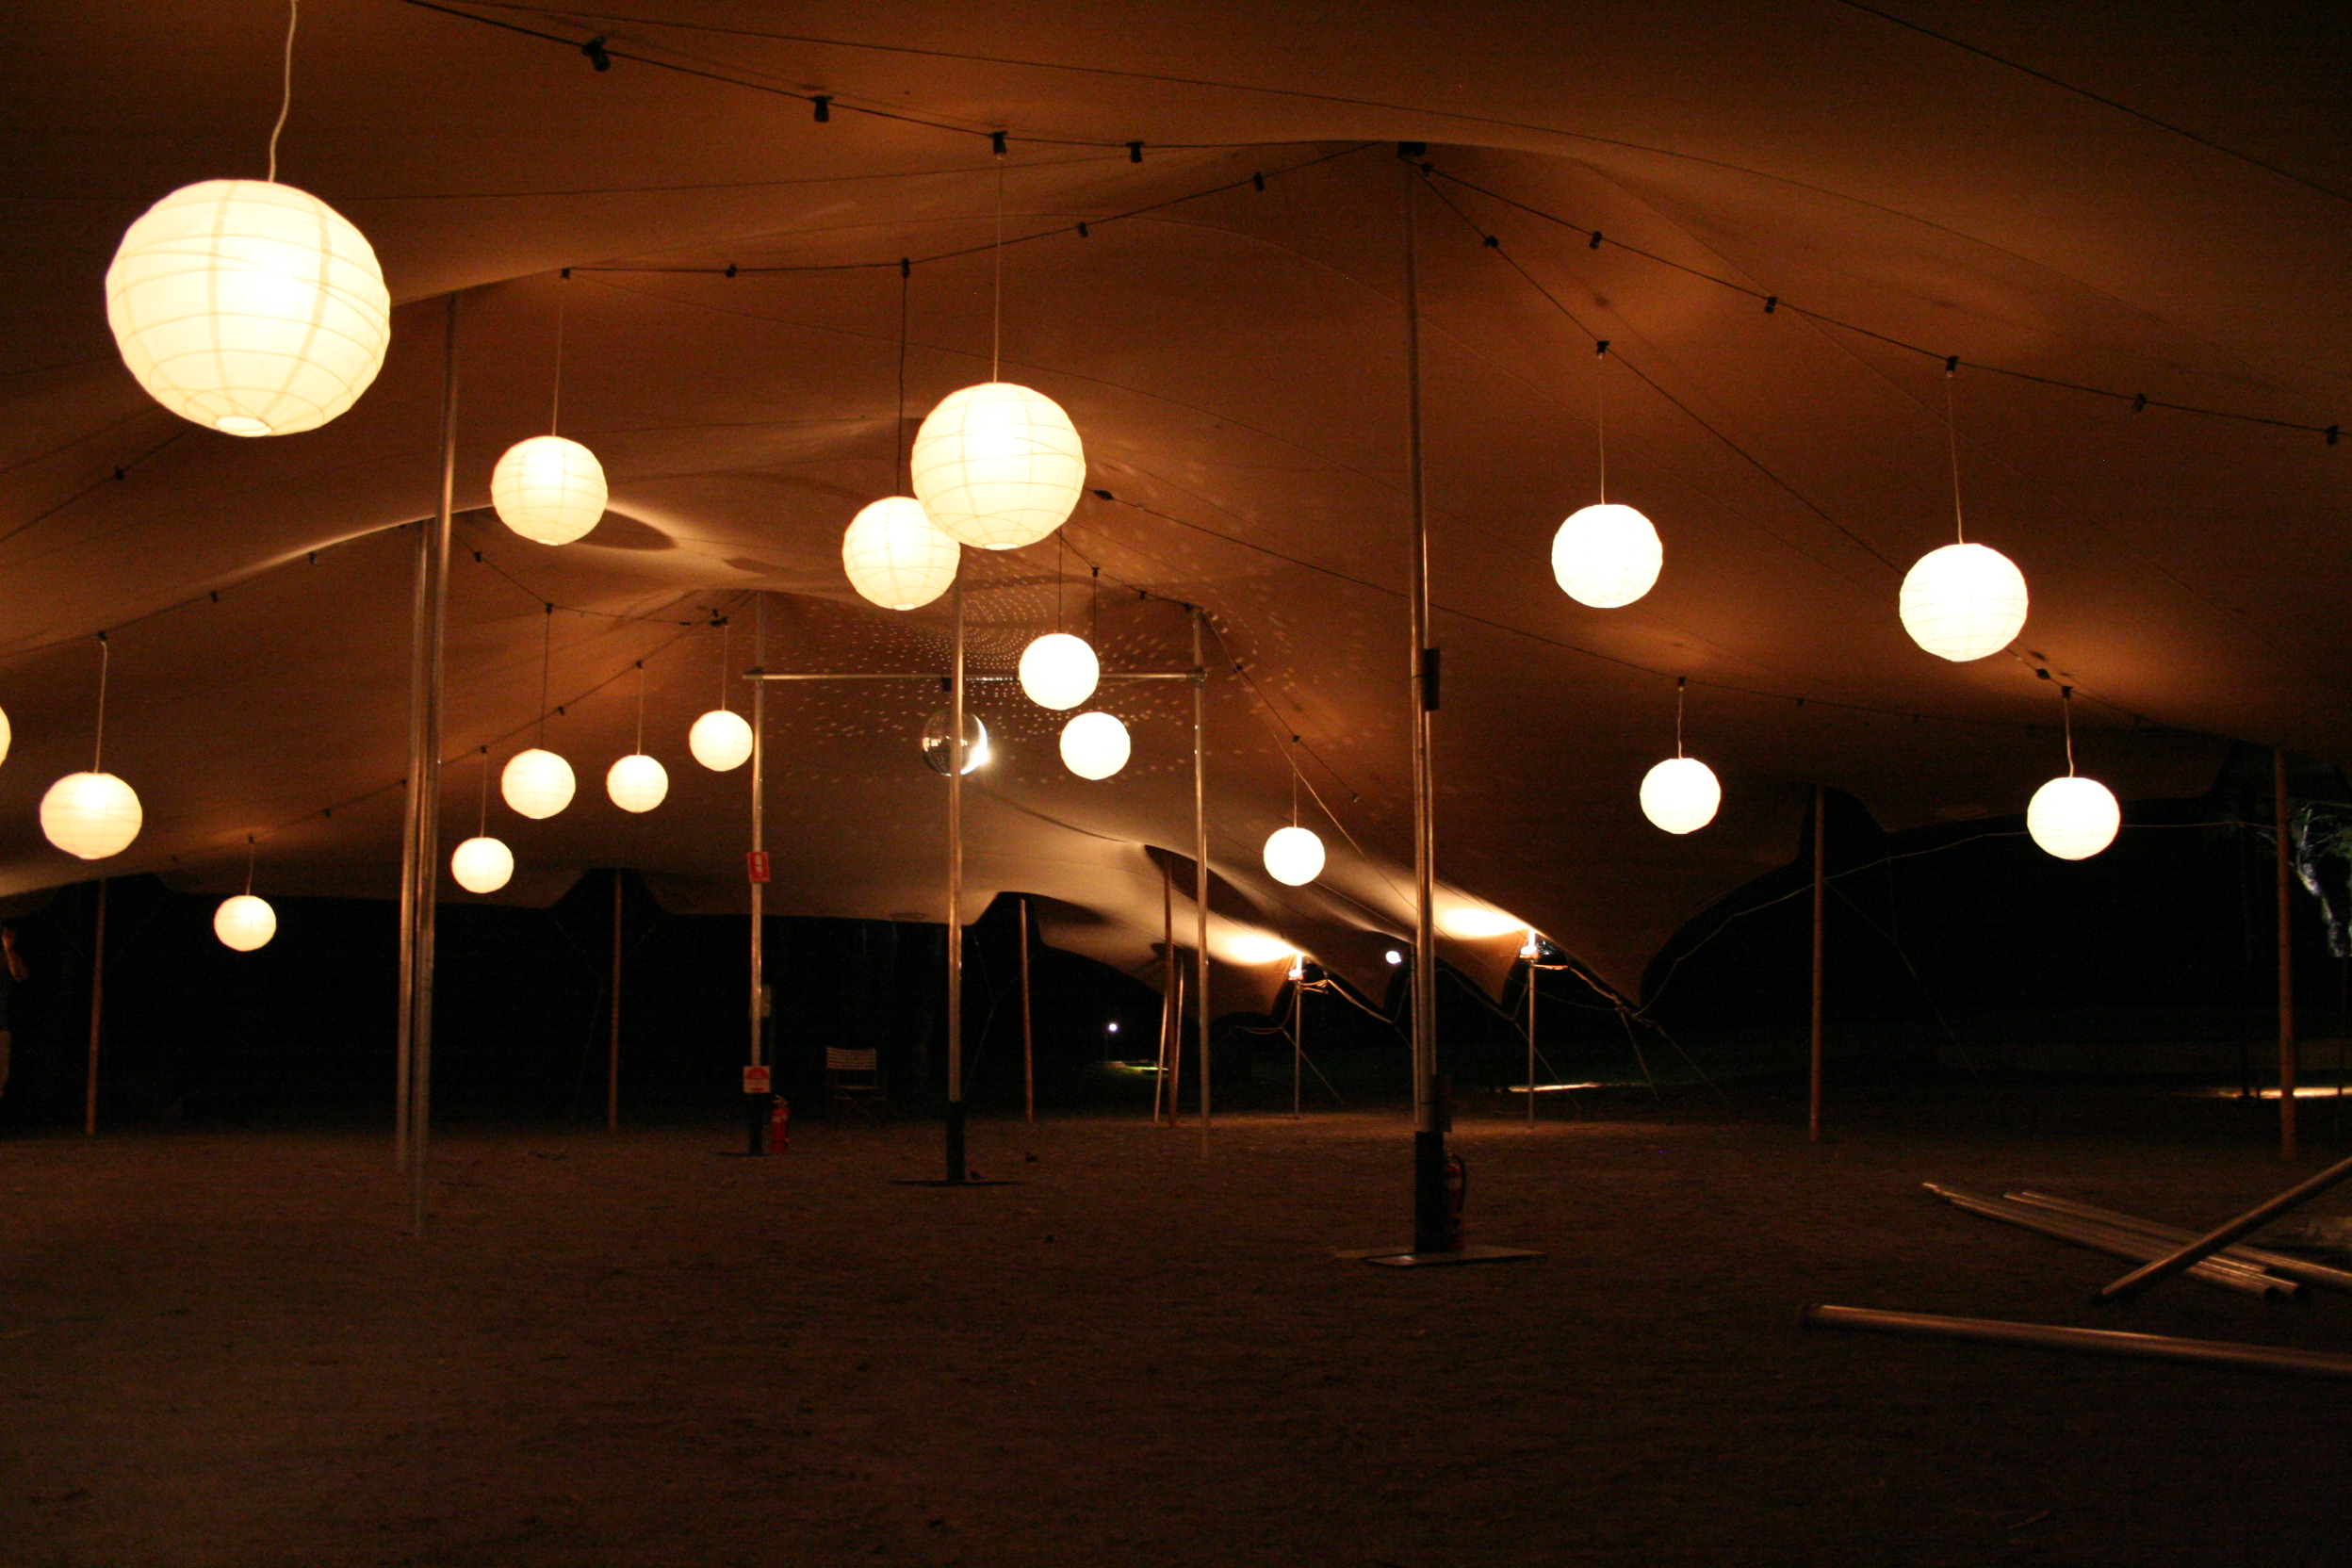 Bedouin Stretch Tent with lights